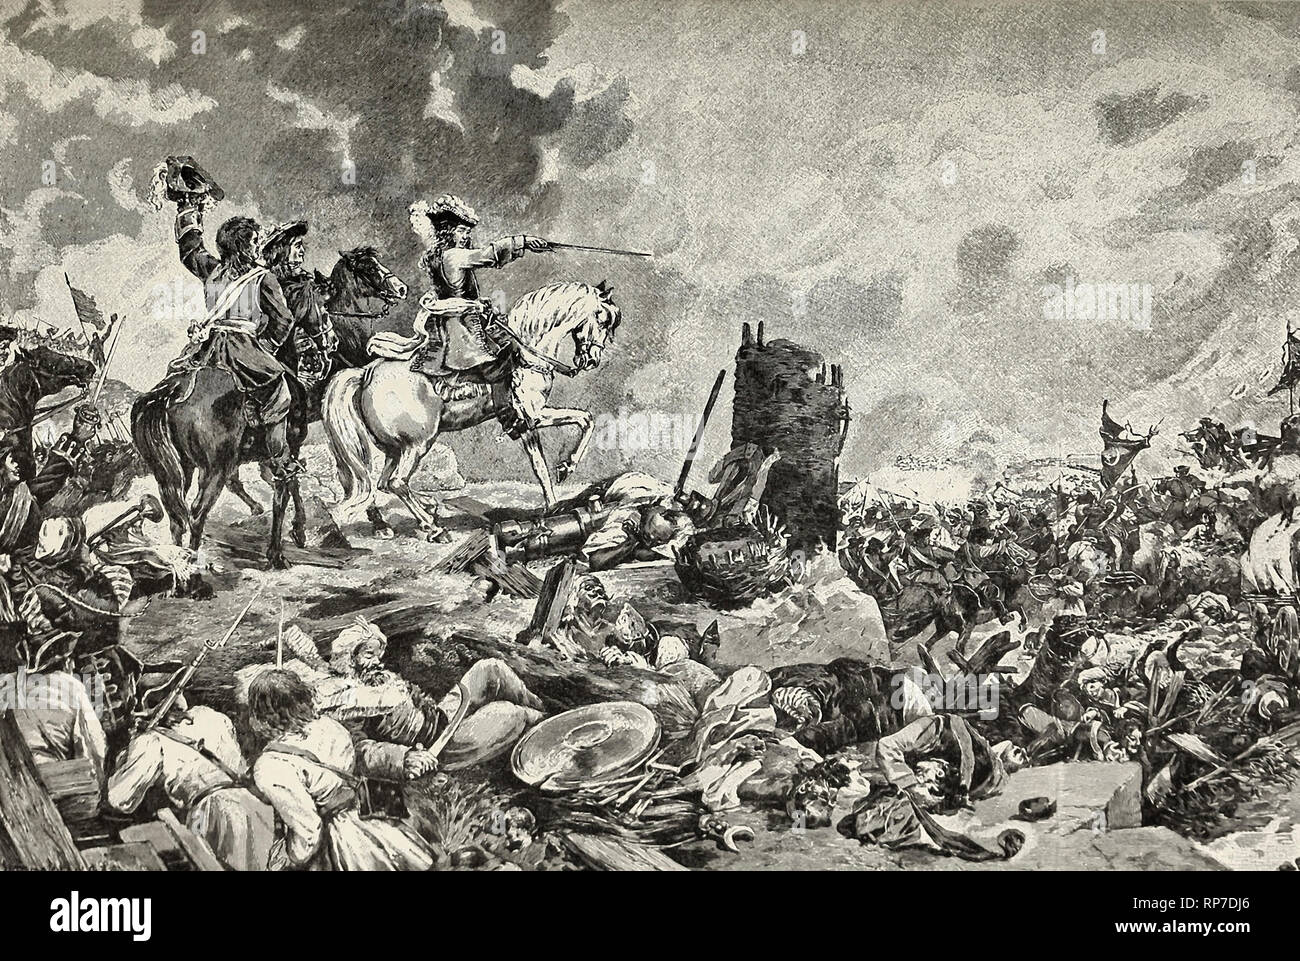 Prince Eugene's Disobedience - Eugene, by defying the Imperial Command, crushes the Turks at Zenta - Stock Image